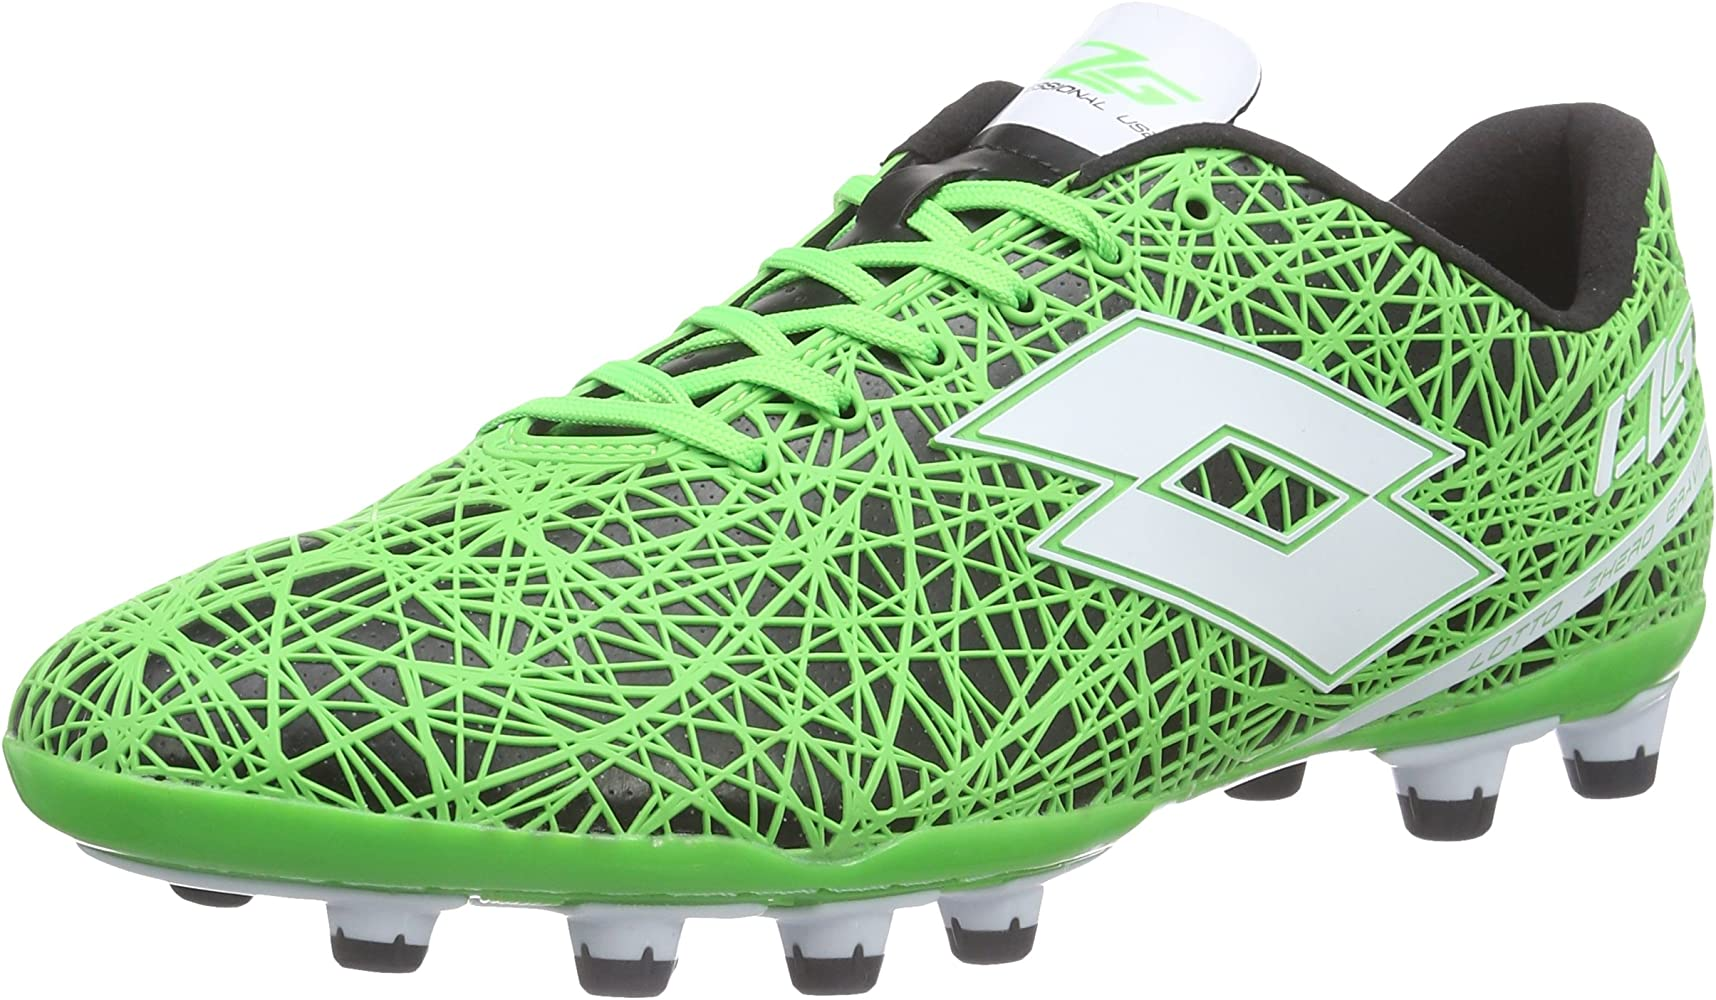 Lotto Men's LZG VII 200 FG Football Boots, Multi Coloured